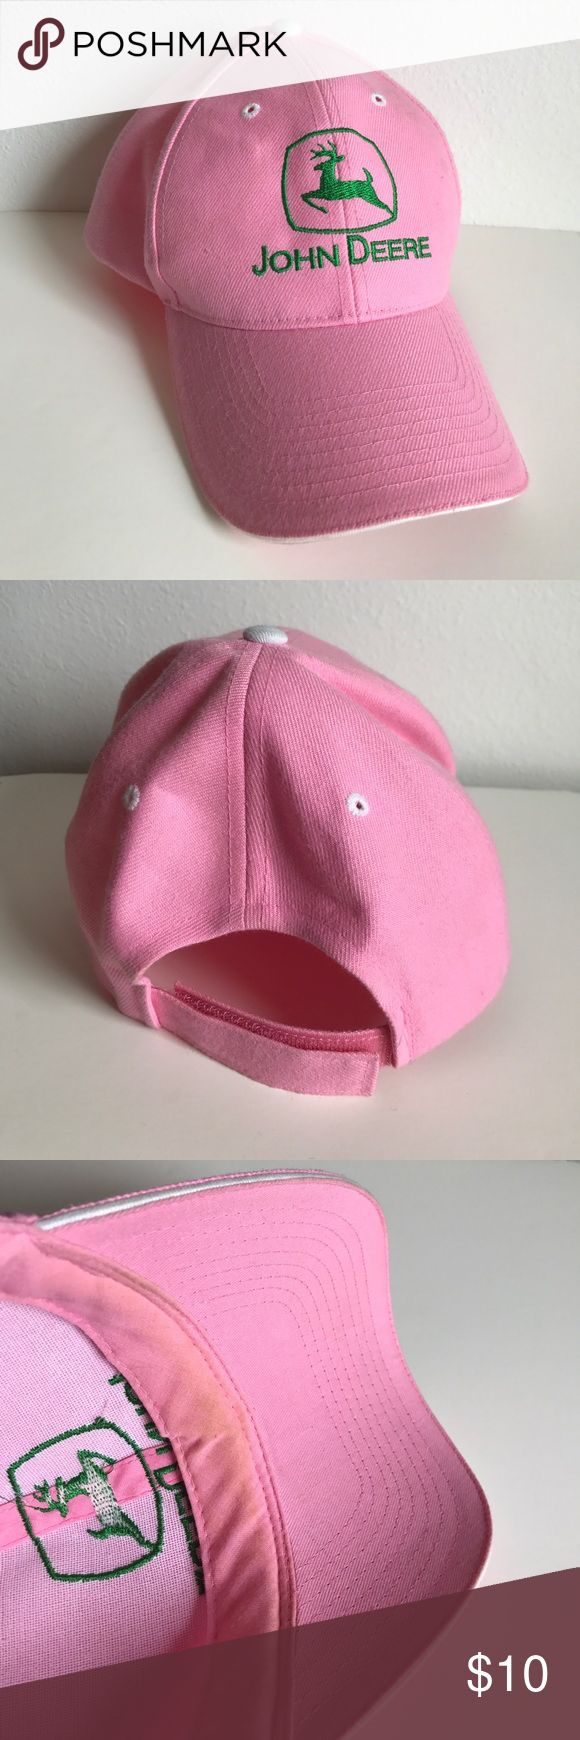 ⚜️New Listing⚜️Pink John Deere Baseball Cap The cute John Deere cap is bright pink, adjustable and in like-new condition except for a light make-up stain under the brim as shown. 🛍Make me an offer or bundle to save. John Deere Accessories Hats